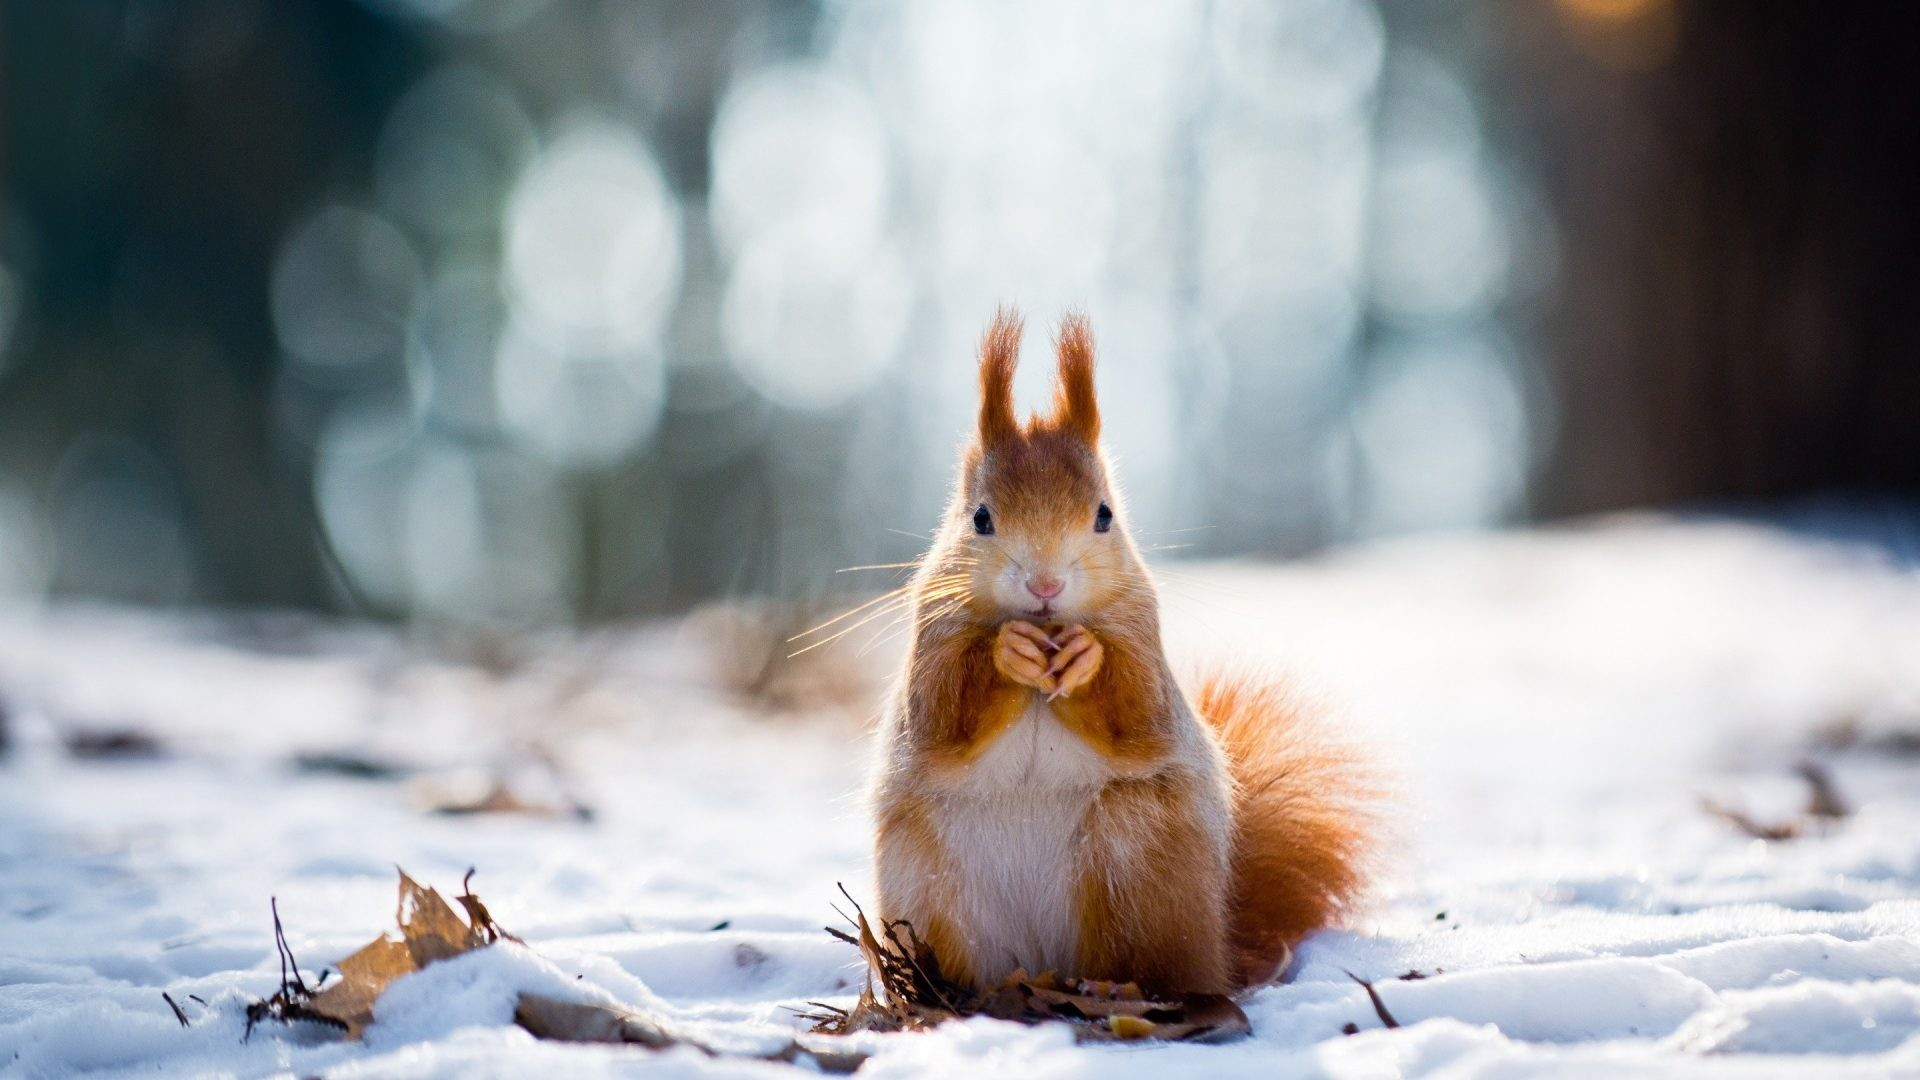 Lovely Tag – Laves Forest Bokeh Lovely Ice Nature White Wild Snow Red  Standing Squirrel Little